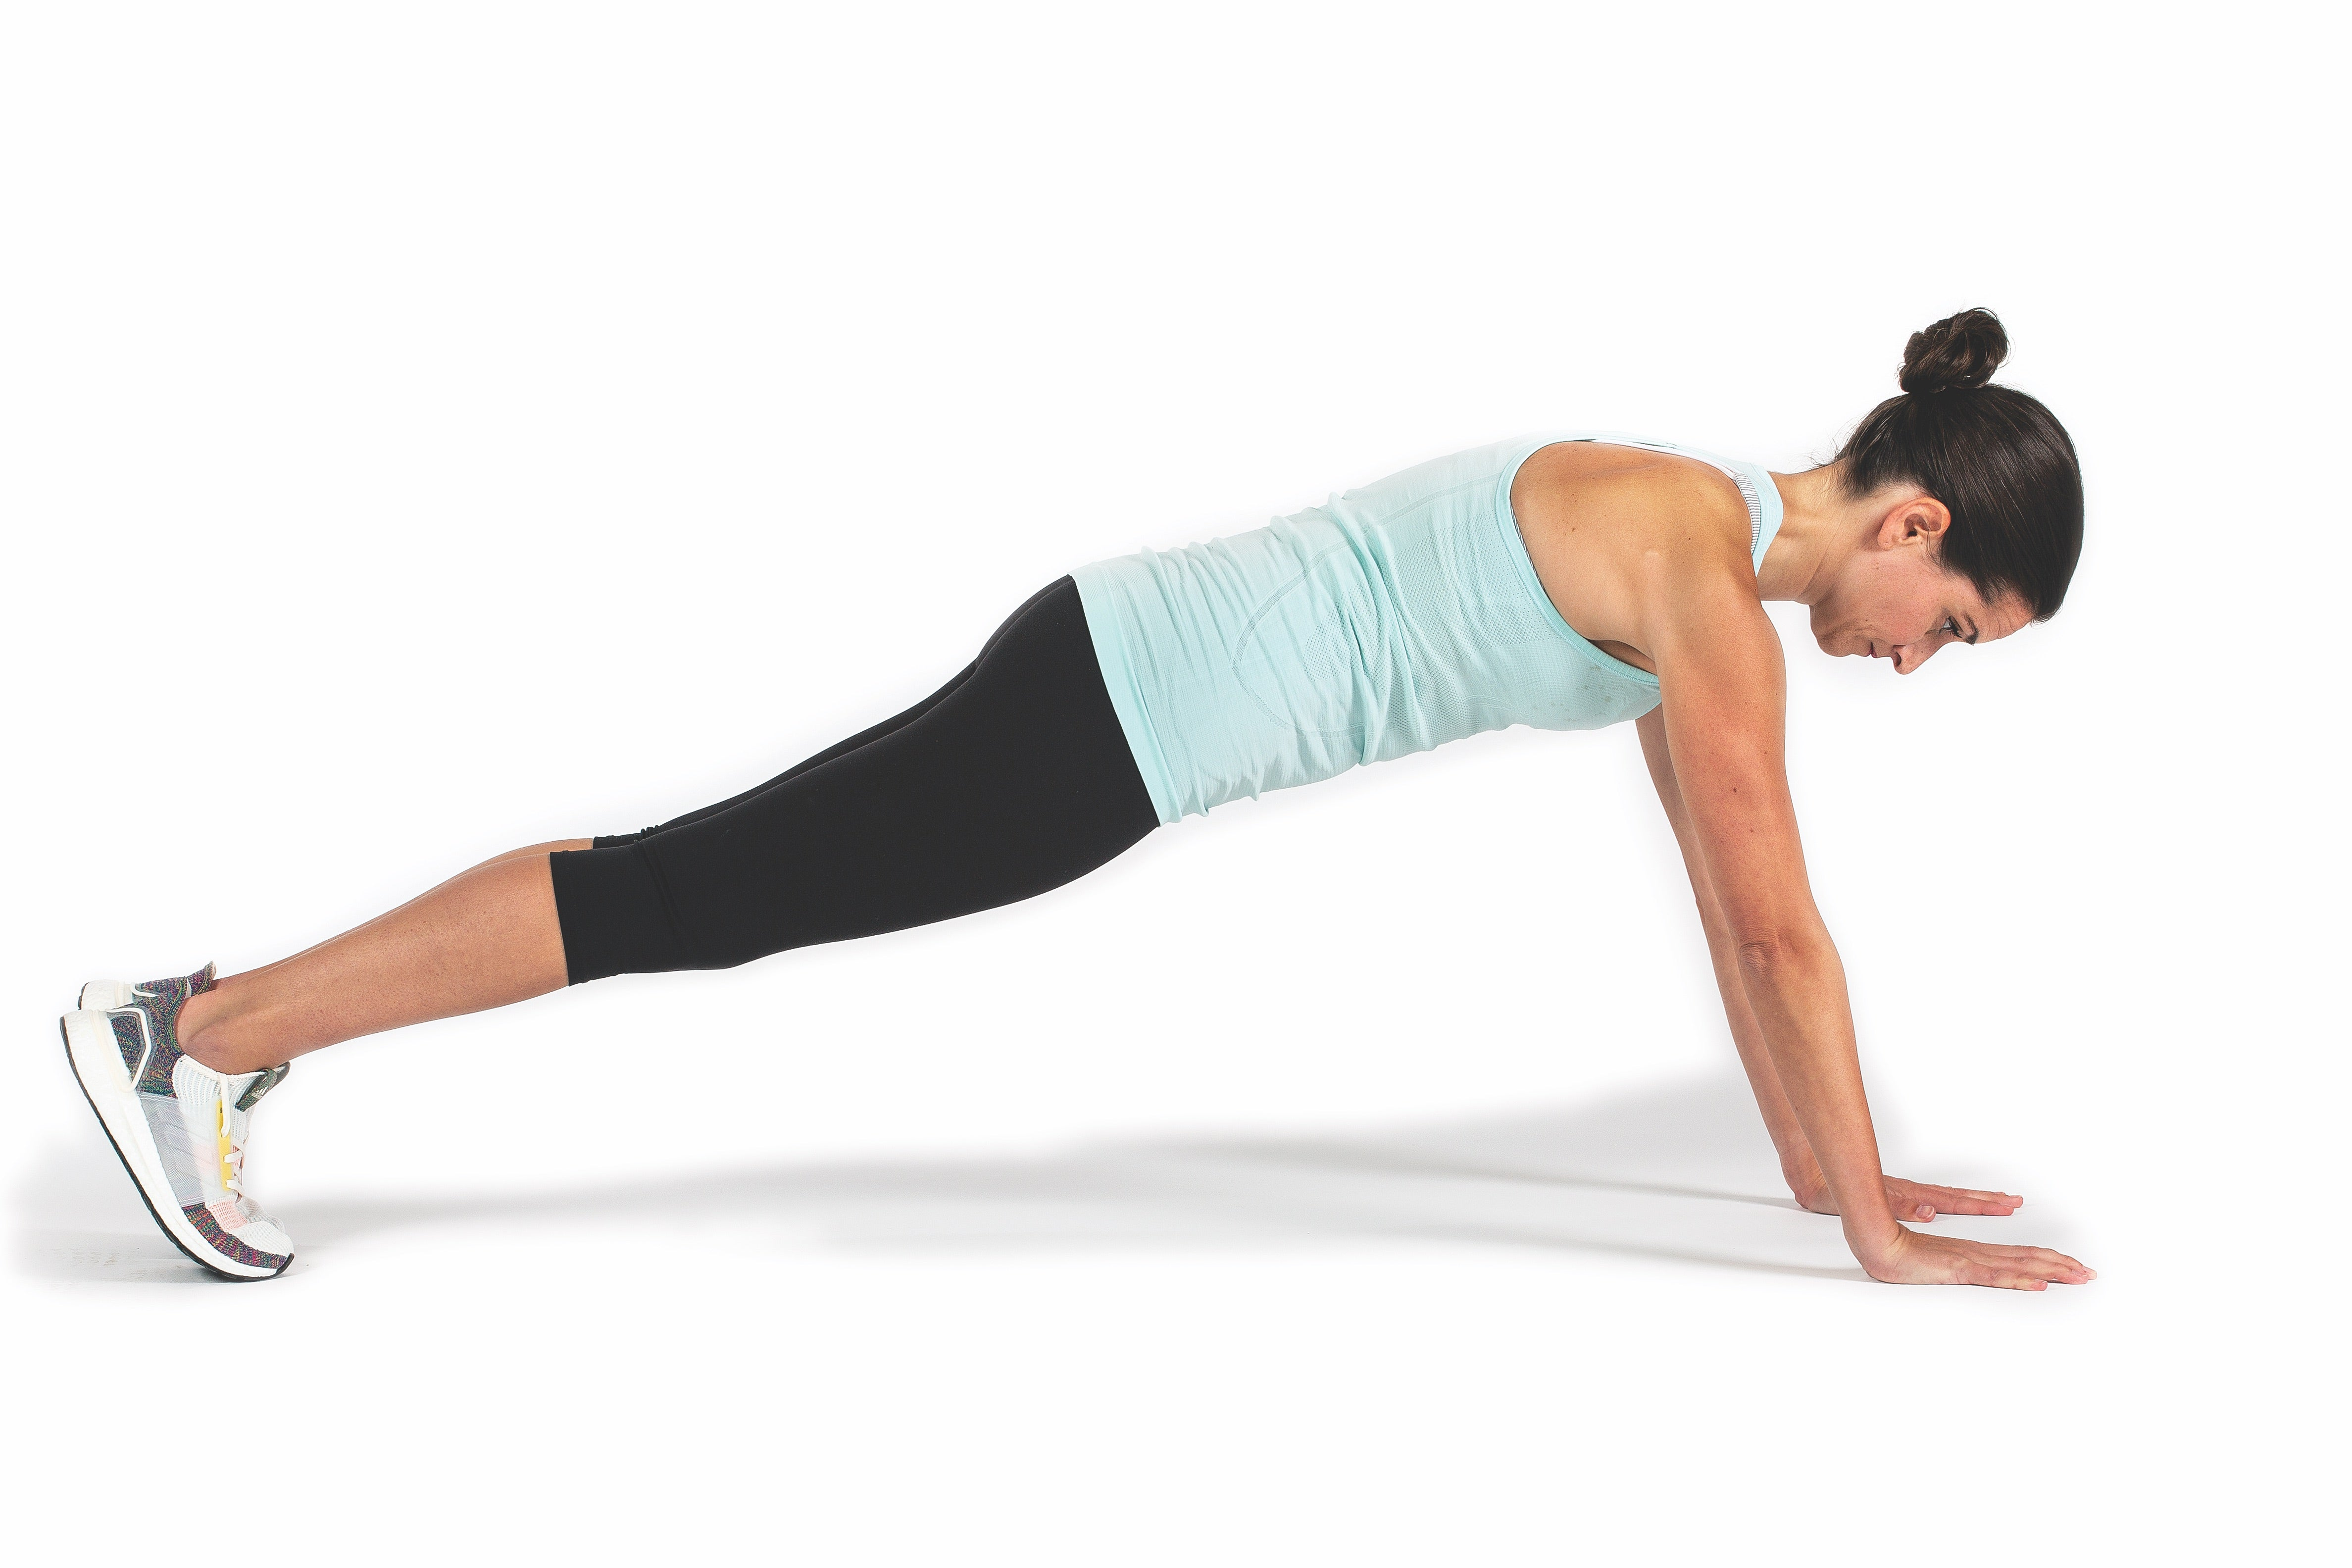 extended-plank-position-two